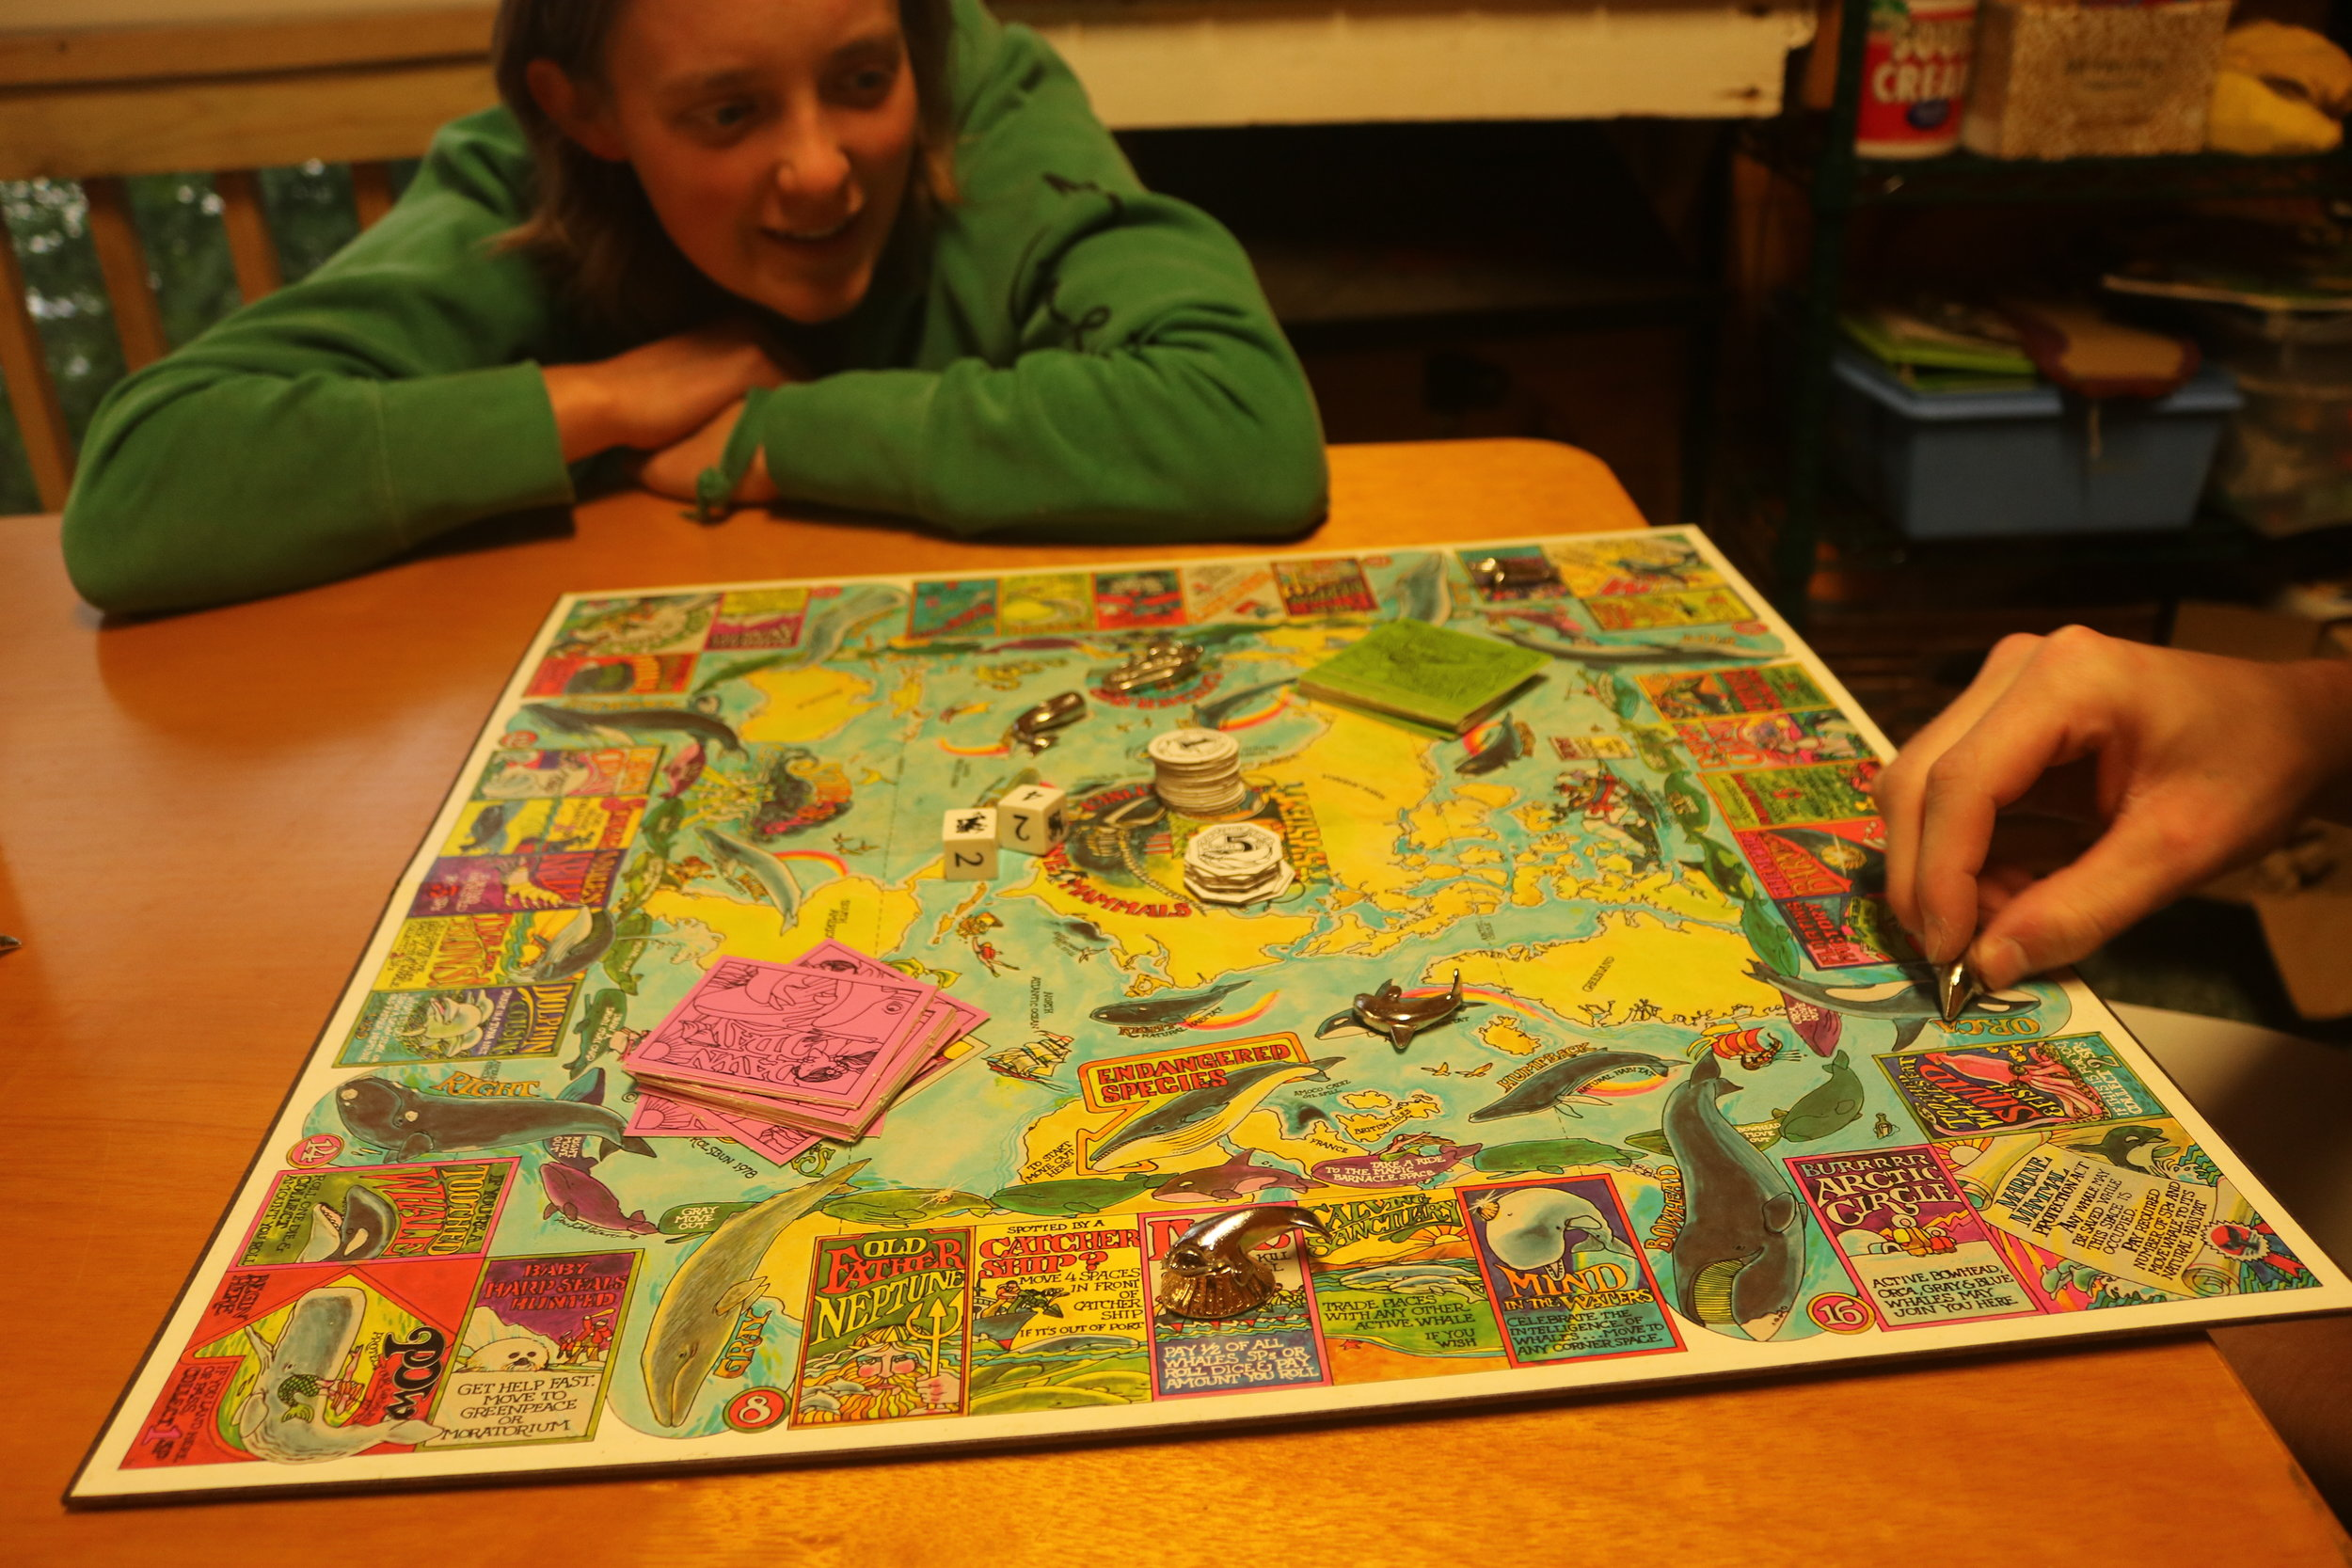 We played the hippie game ever - SAVE THE WHALES. It was really overcomplicated. Then the second half of the rulebook was just a pamphlet about whales.